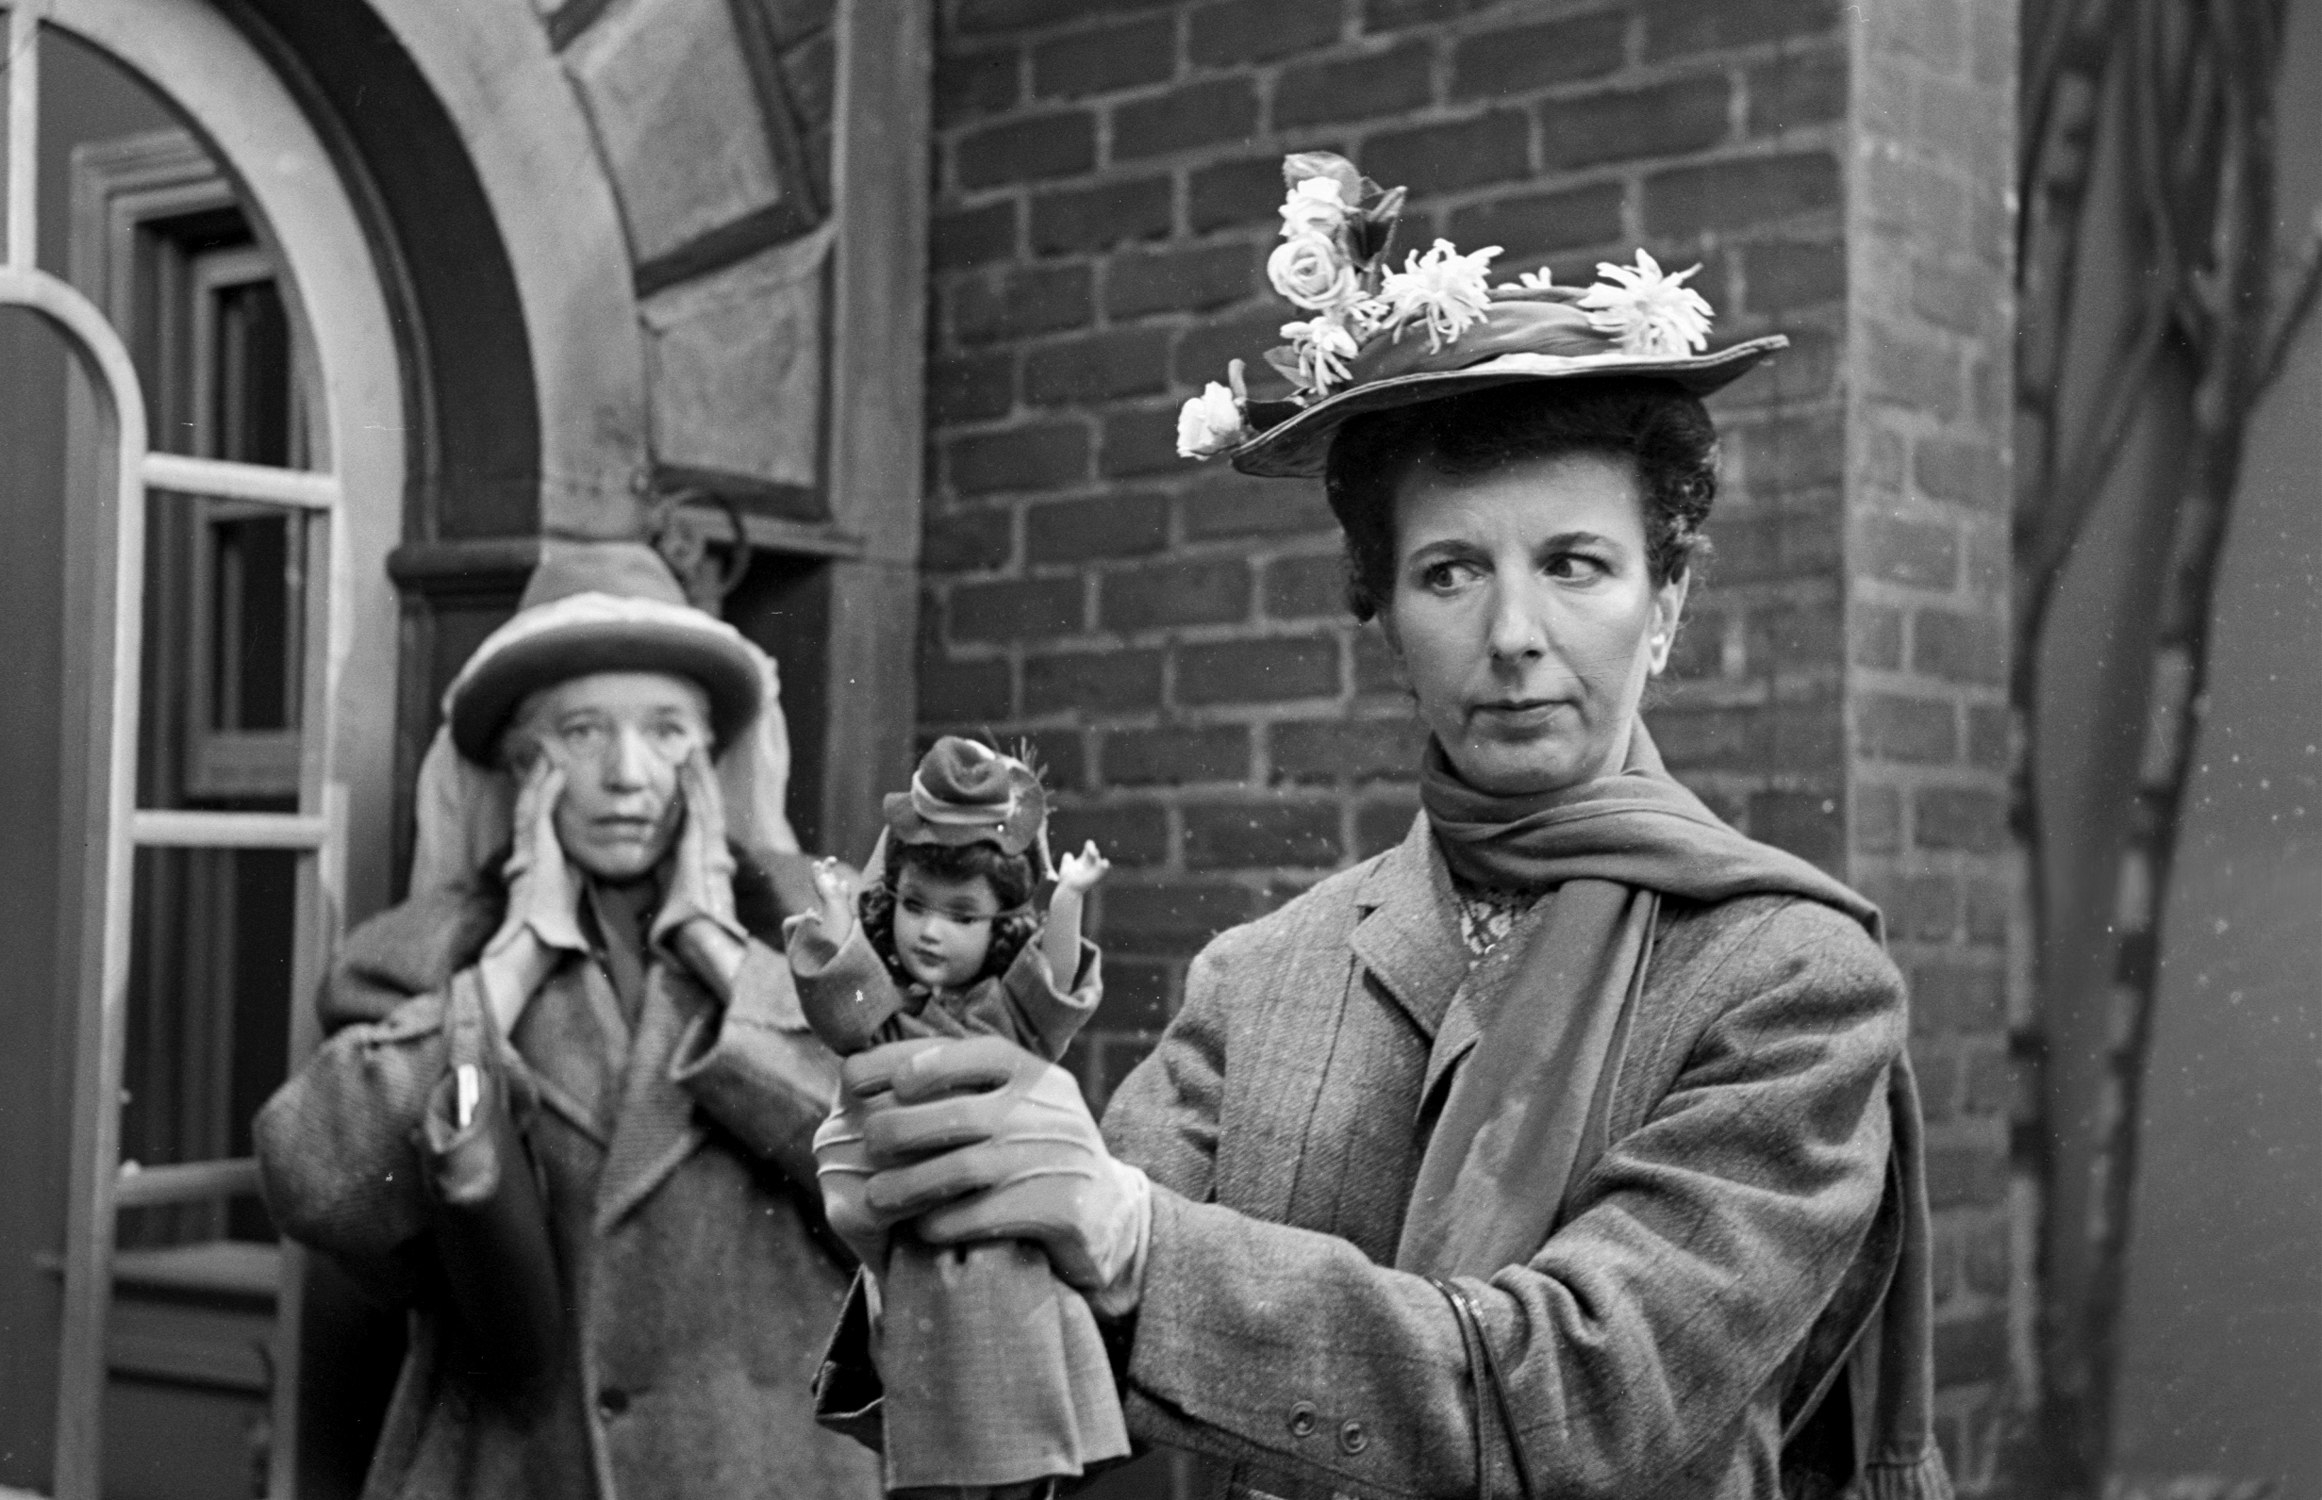 A photo of Mary Wickes holding a doll dressed as Mary Poppins